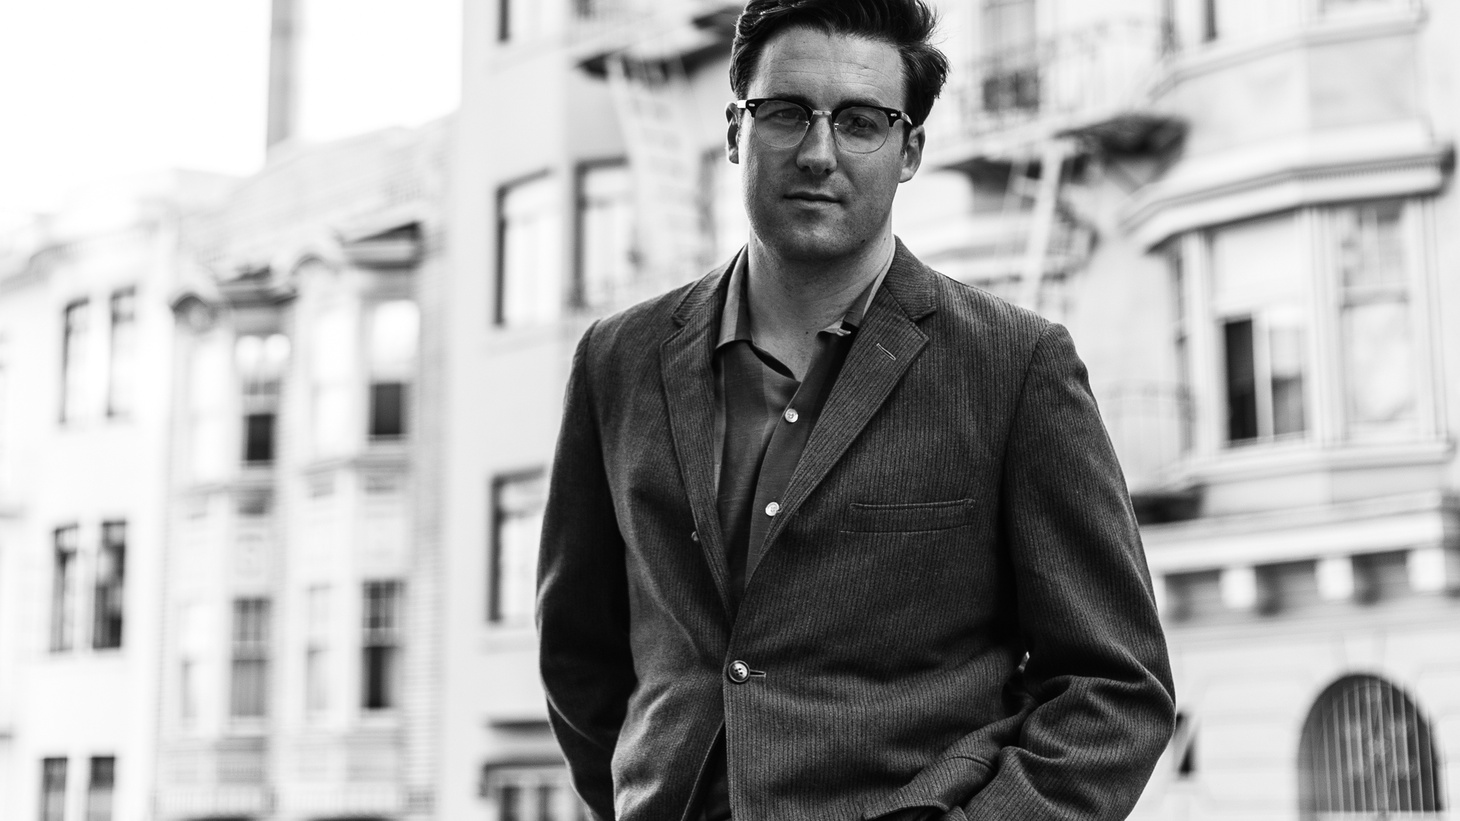 Bred in Huntington Beach, Nick Waterhouse has a sweet spot for rhythm and blues.